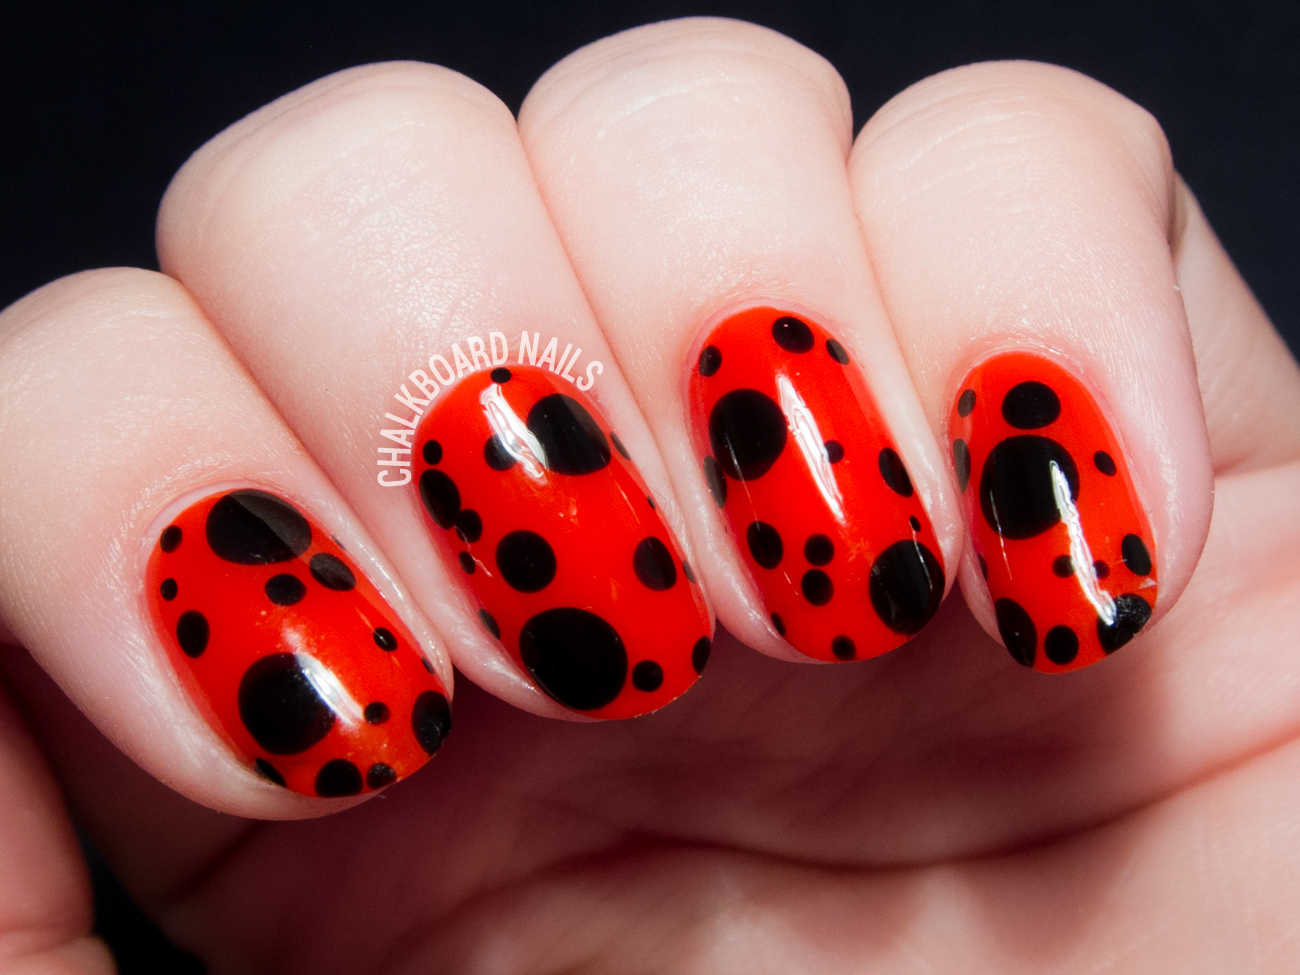 Ladybird Inspired Nail Art | Chalkboard Nails | Nail Art Blog